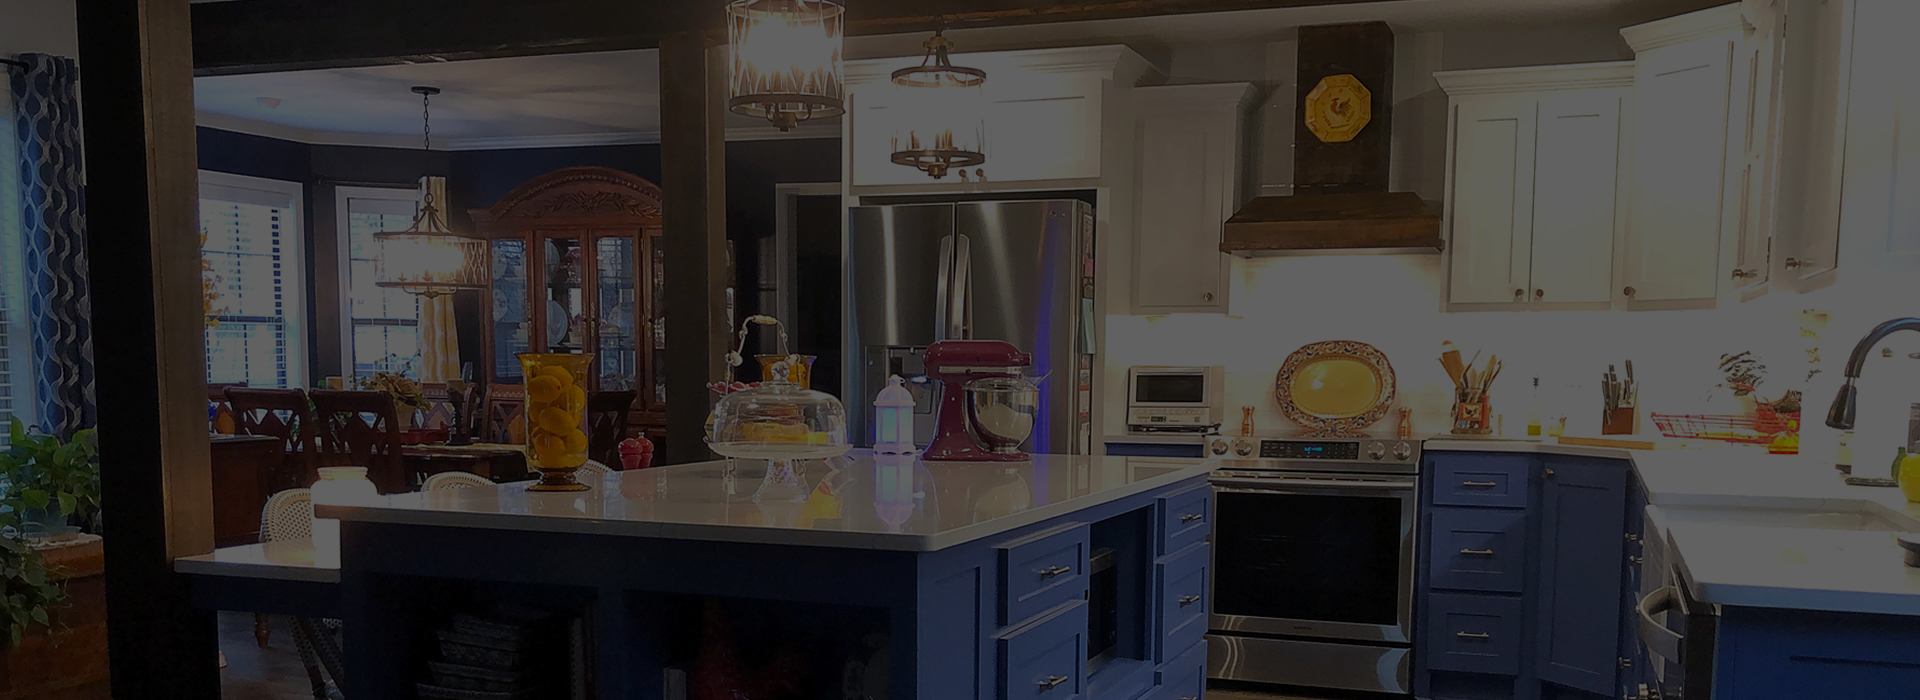 Kitchen and a view of a dinning room. Kitchen has blue lower cabinets, white upper cabinets, and white counter-tops.